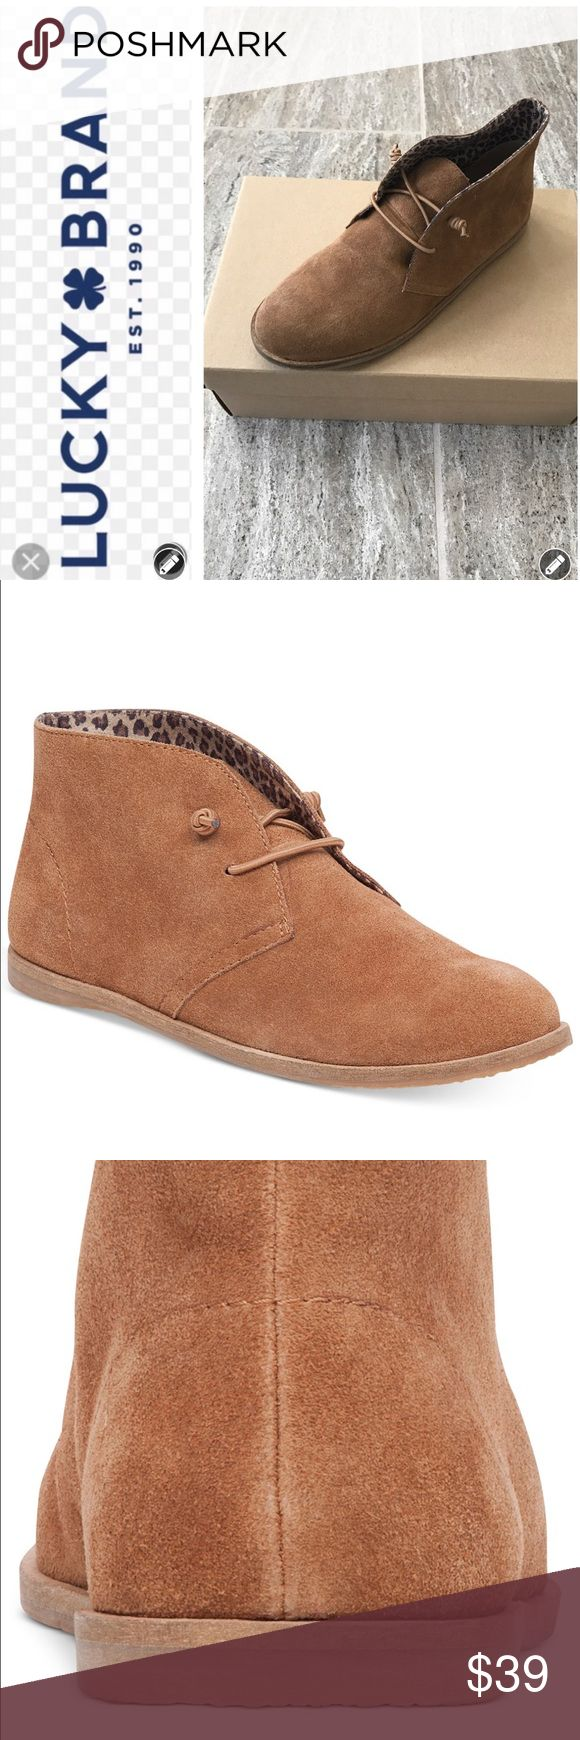 NWT & NIB Lucky Brand Ashbee Desert Boots NWT & NIB Lucky Brand Ashbee Boots are featured in Honey. This stylish Bootie has a casual silhouette and a work day friendly flat sole. Suede Upper with man made nylon laces. Lightly padded footbed. Material lining. Rubber outsole. Round toe. Lace up closure. Super Cute! Smoke Free Home. Please Note that the size 9 is in a box that is marked size 10. The style, color and brand is accurate just not the size. Boot is M width and runs truer to size…